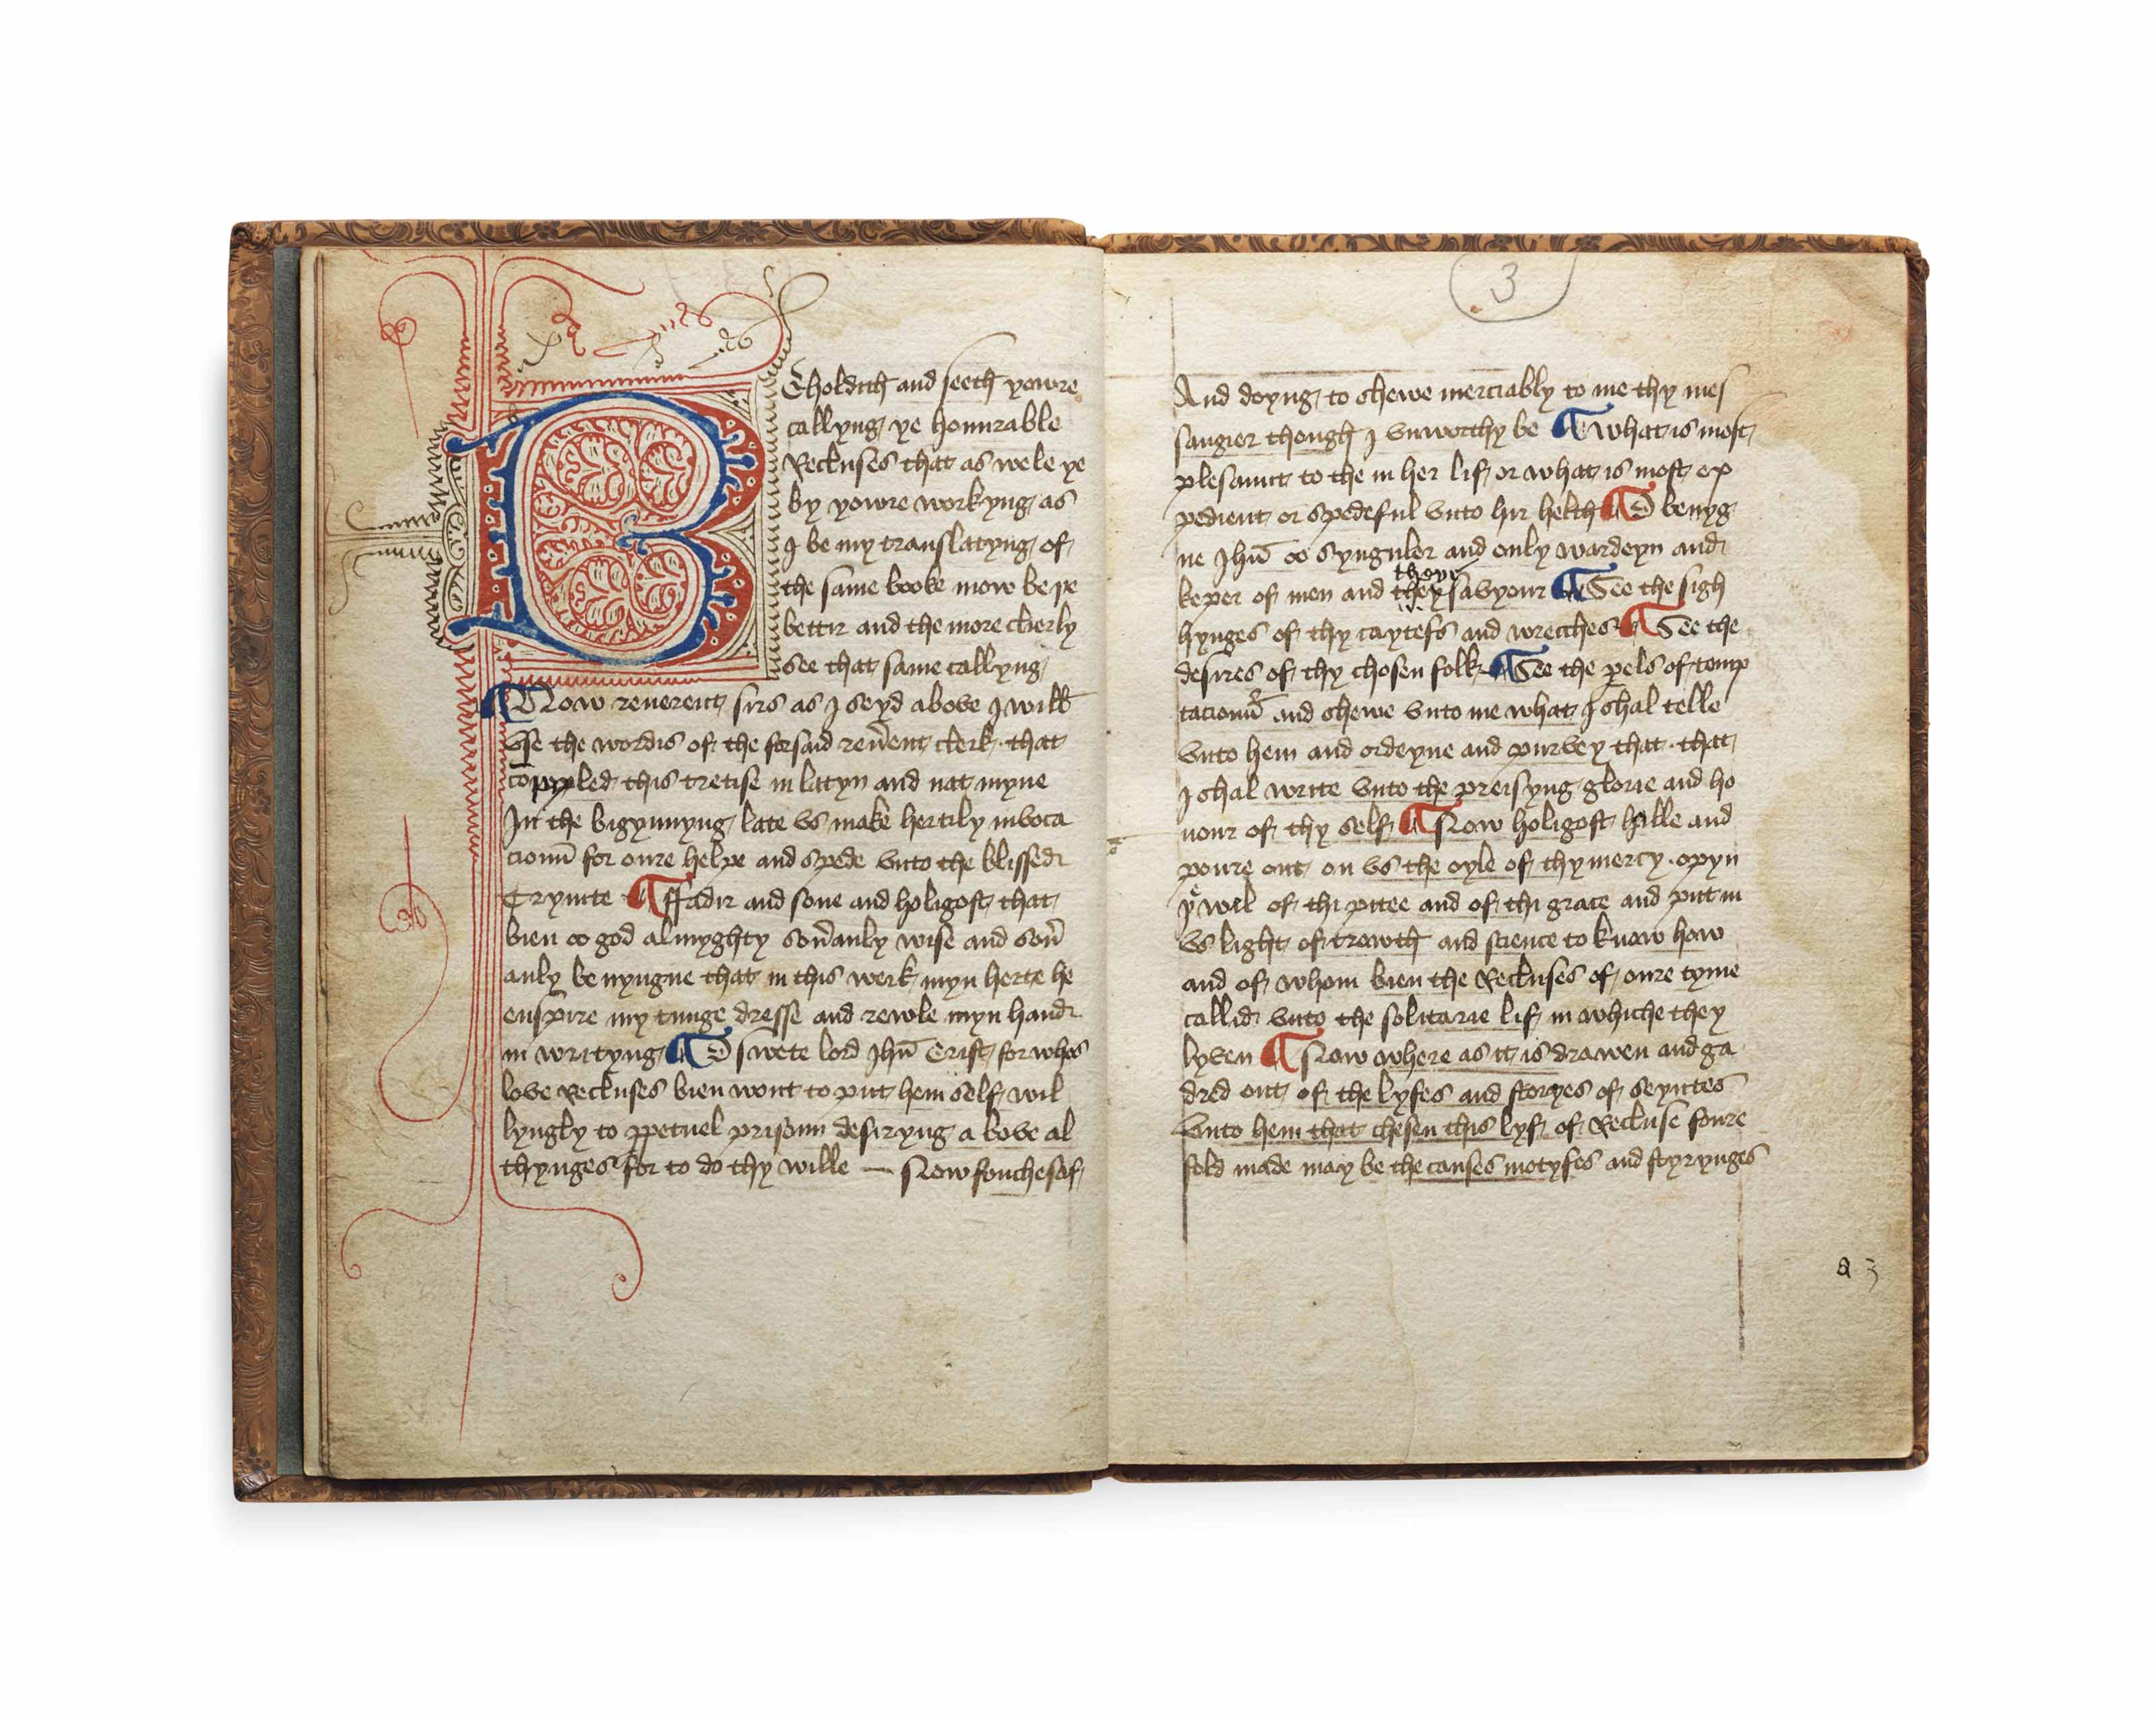 Anonymous (fl. 1414), The Mirror of Recluses, in Middle English with a little Latin, DECORATED MANUSCRIPT ON PAPER [England, perhaps London, c.1414-22]